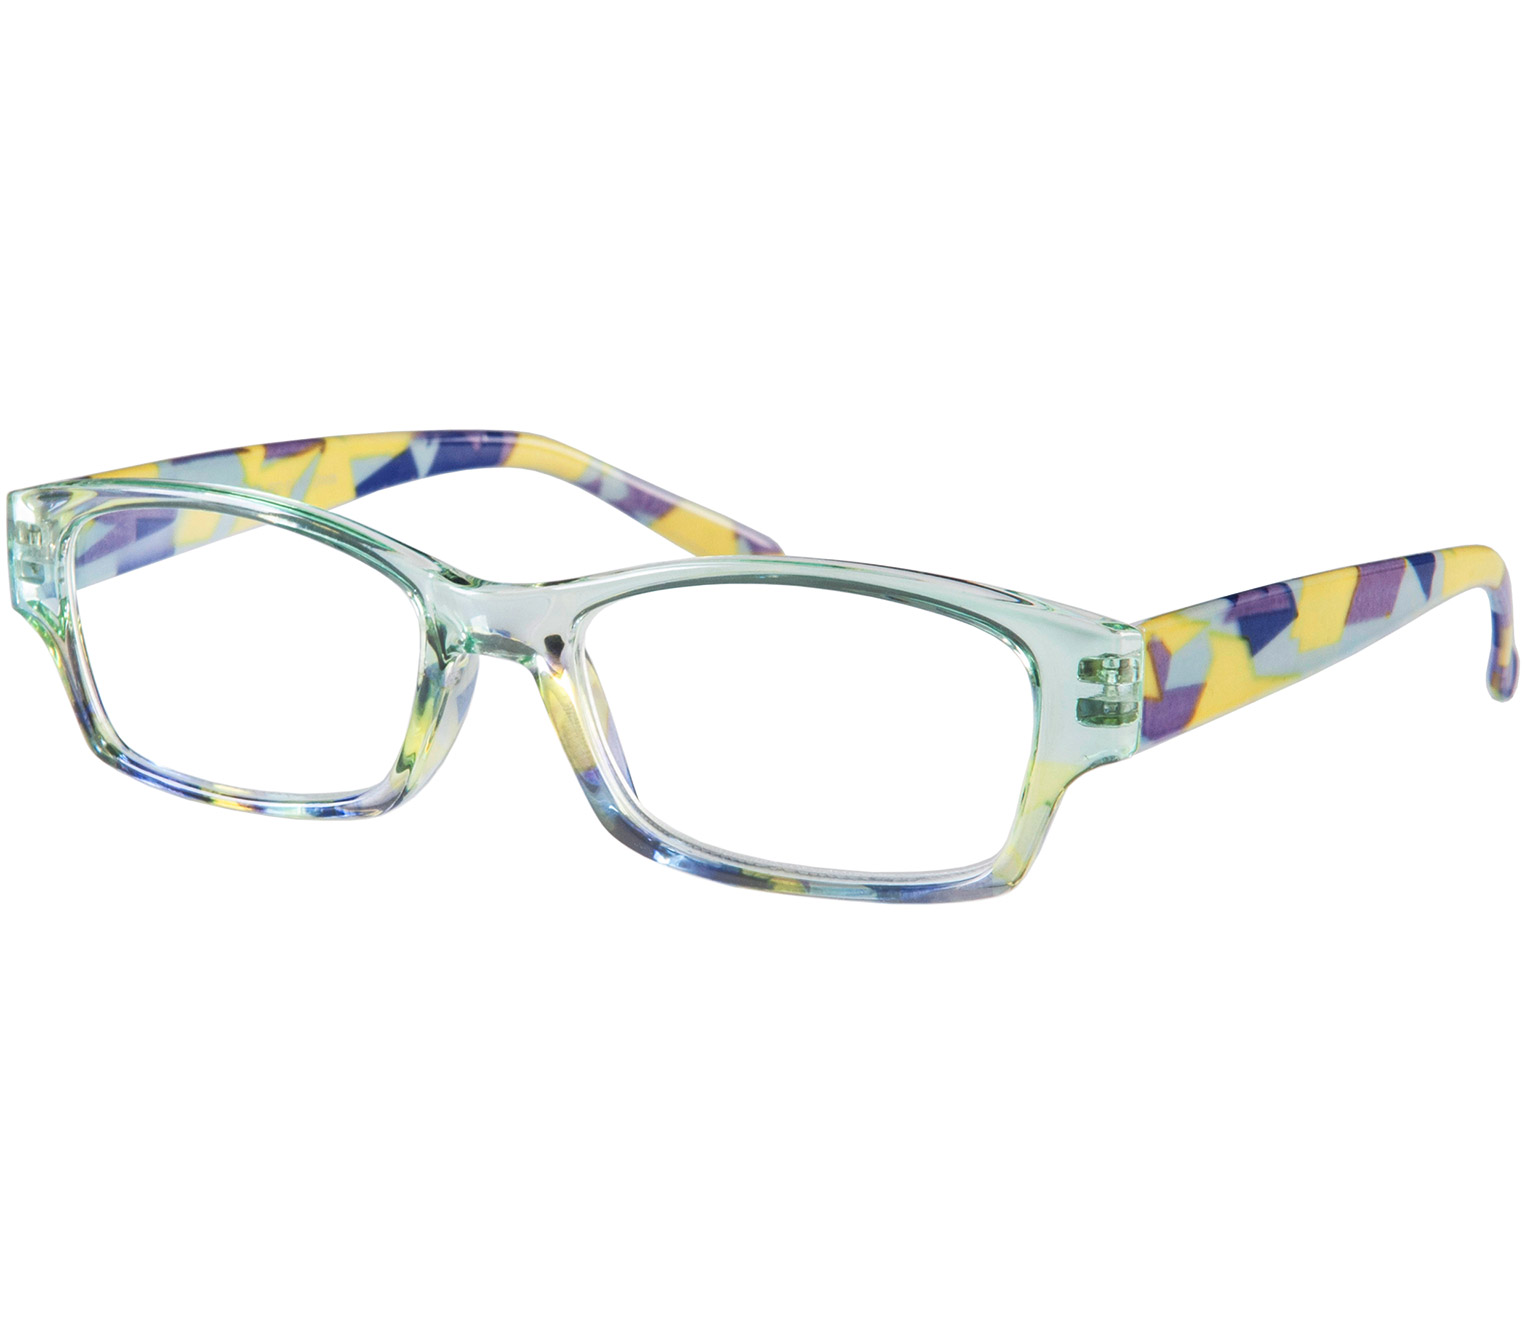 Main Image (Angle) - Mozaic (Blue) Reading Glasses